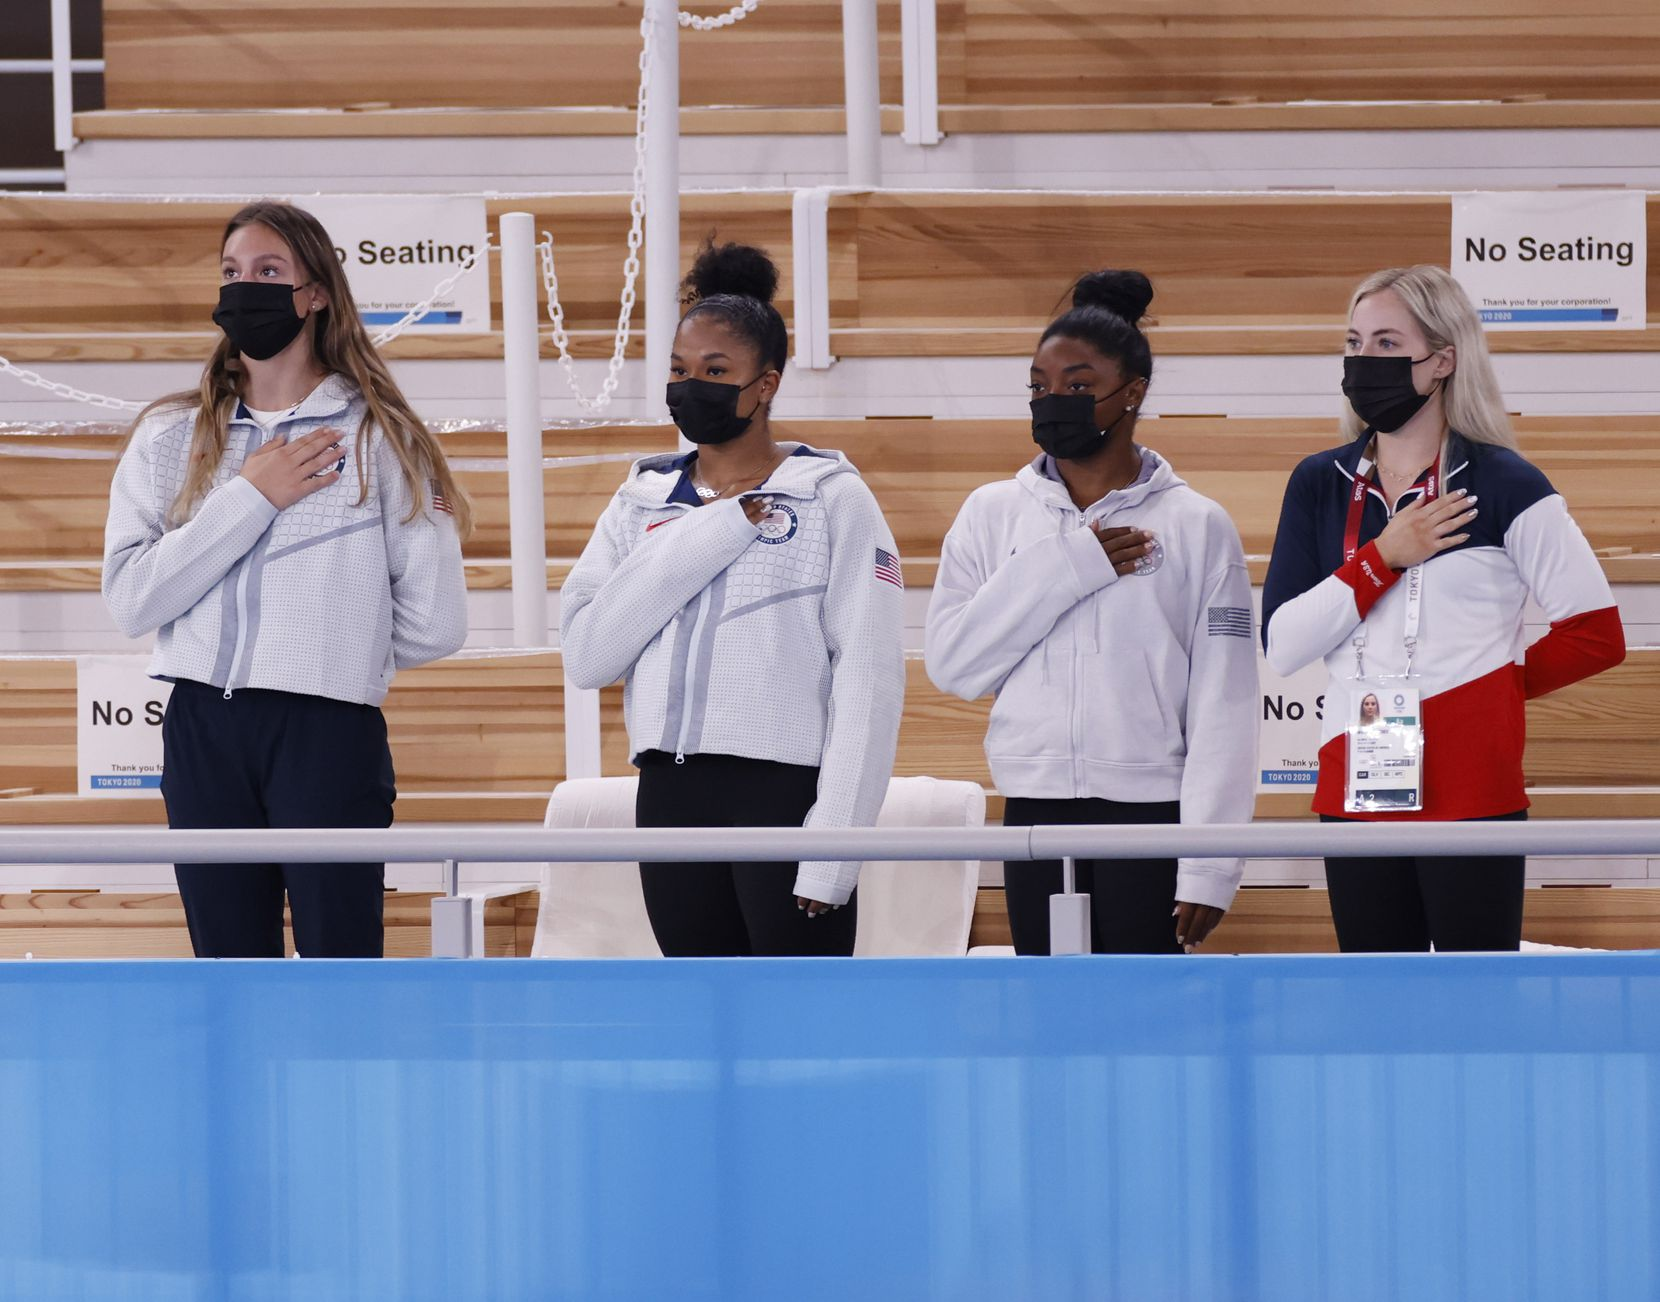 (From l to r) USA's Grace McCallum, Jordan Chiles, Simone Biles, and MyKayla Skinner stand during the playing of the national anthem after Sunisa Lee received her gold medal during the medal ceremony for the women's gymnastics individual all-around final at the postponed 2020 Tokyo Olympics at Ariake Gymnastics Centre, on Thursday, July 29, 2021, in Tokyo, Japan. (Vernon Bryant/The Dallas Morning News)